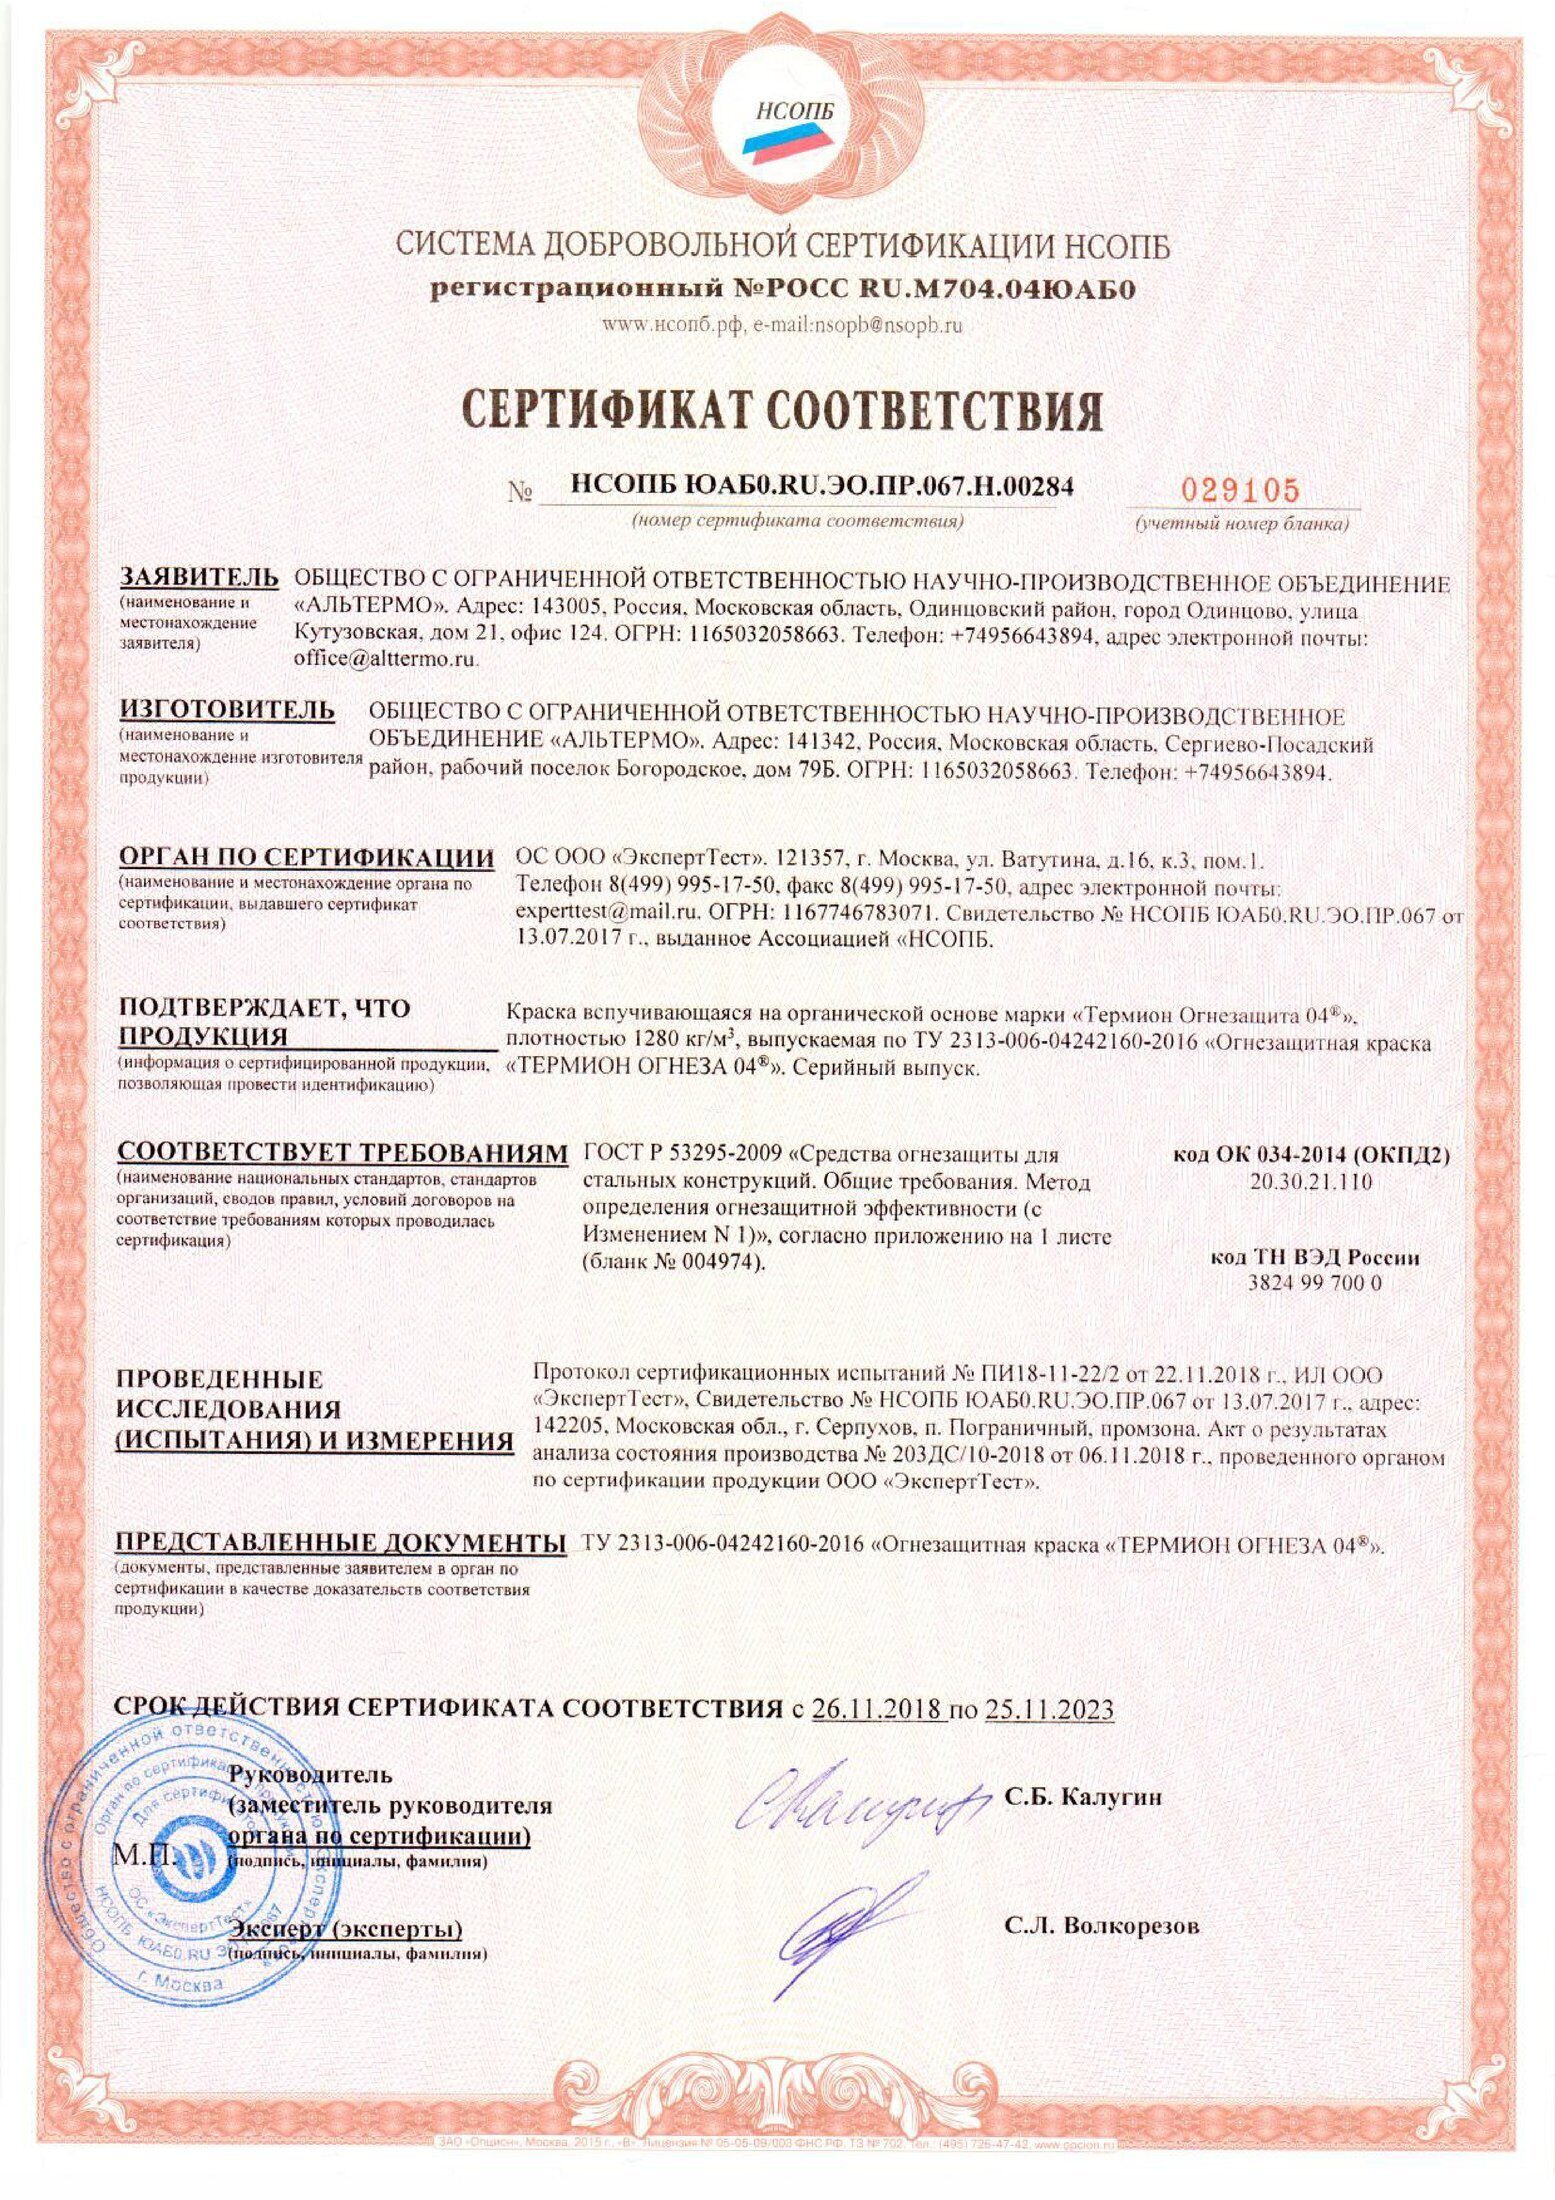 5. CERTIFICATE OF FIRE SAFETY FIRE PROTECTION